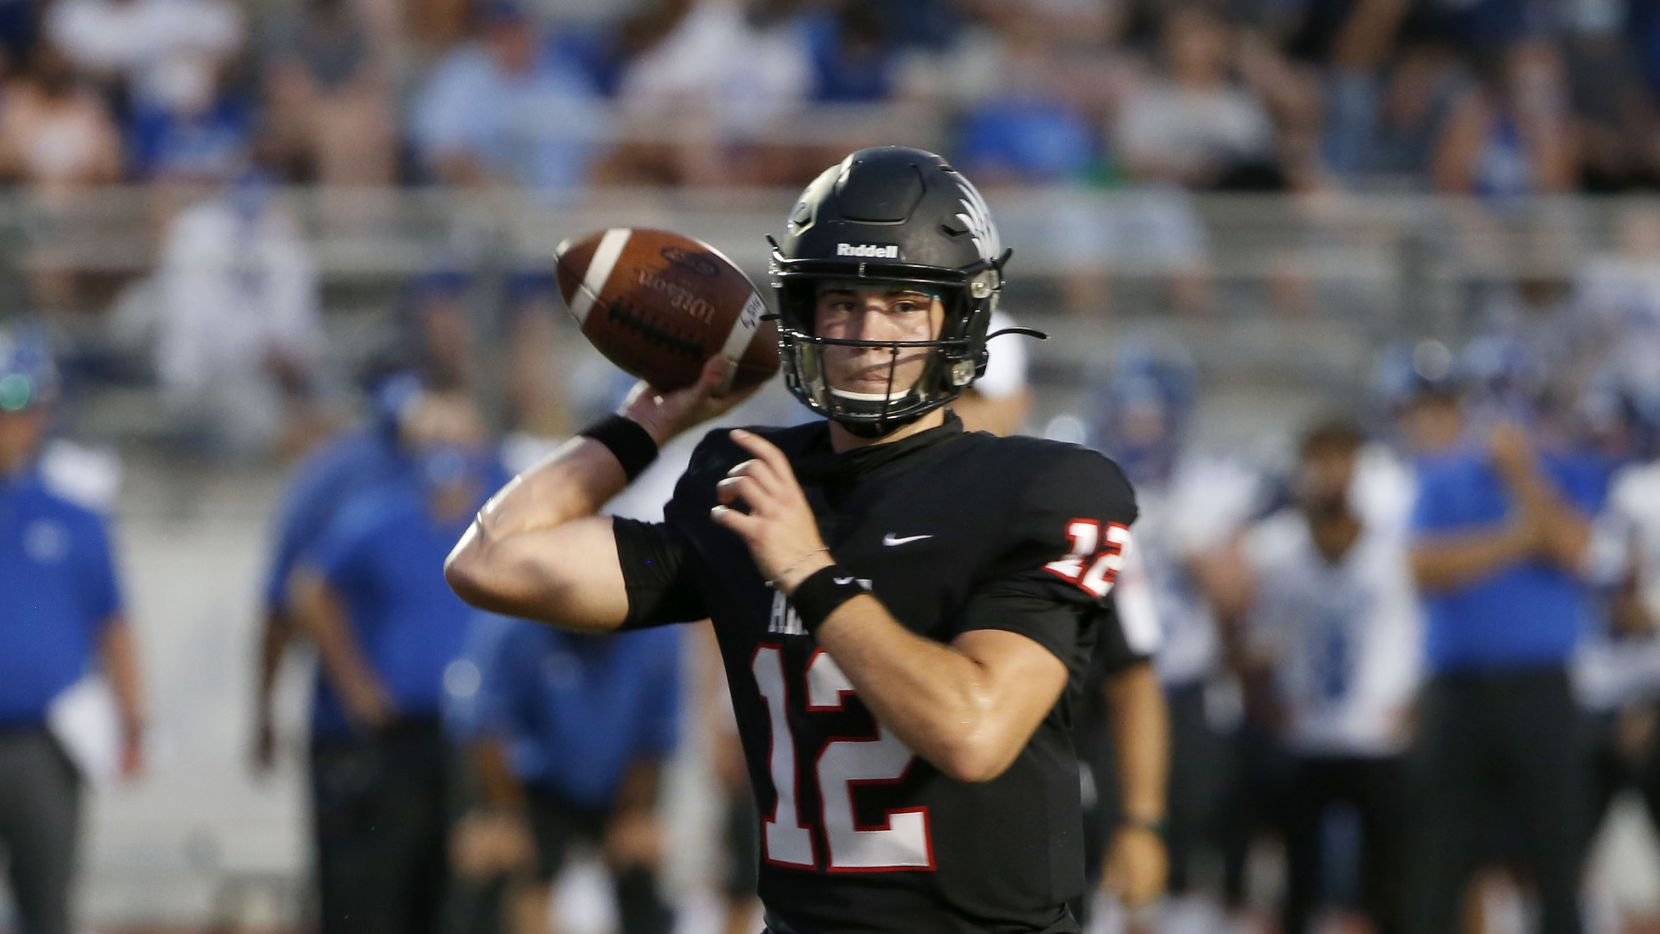 Argyle quarterback CJ Rogers (12) throws during a high school football game against Decatur in Argyle, Tx, on August 28, 2020.    ORG XMIT: Argyle27